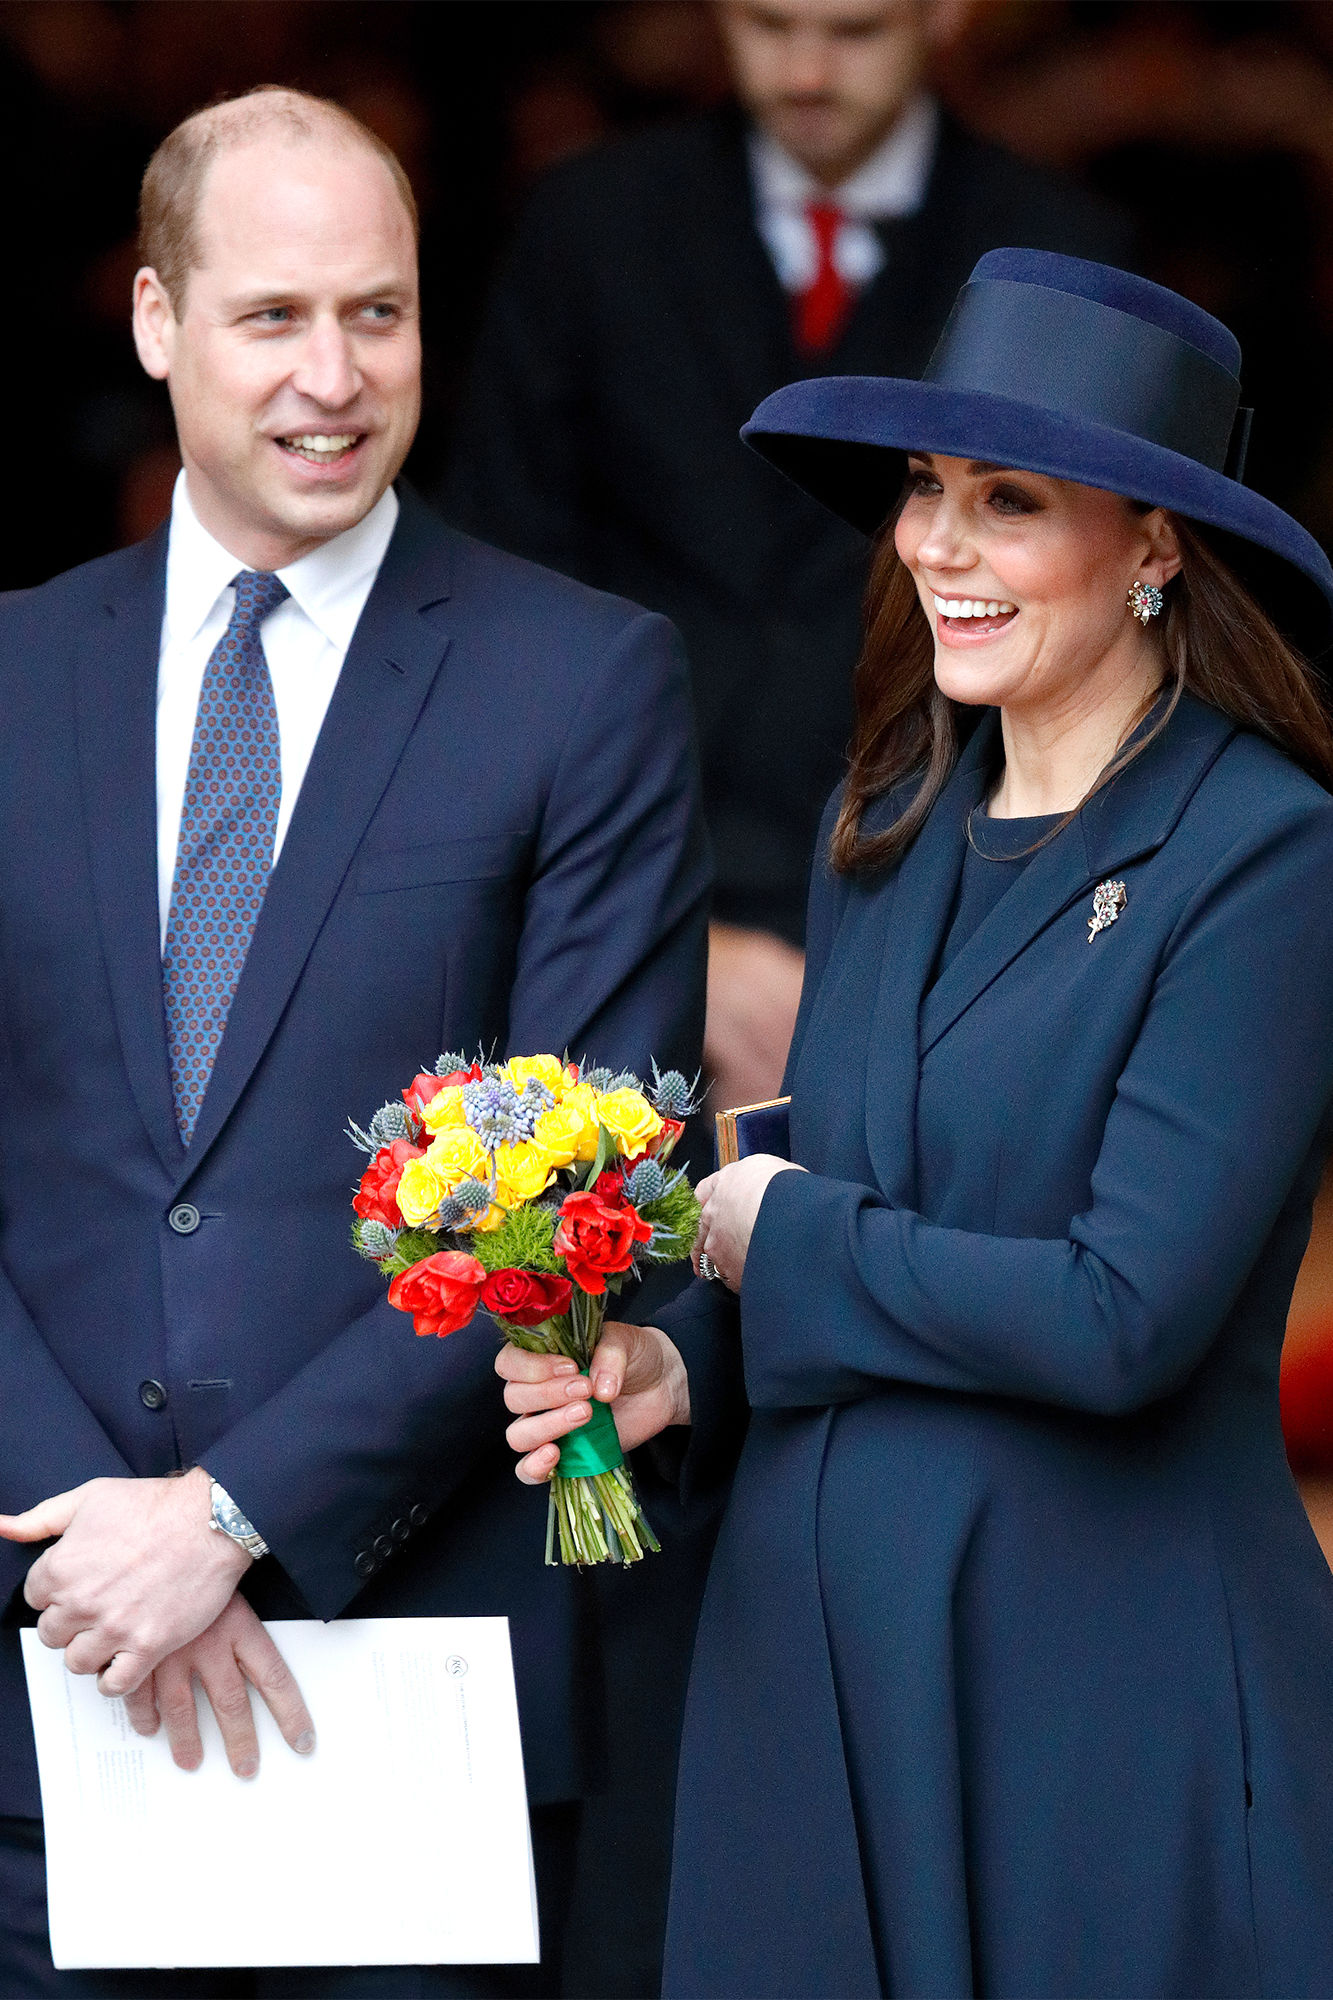 What Are Prince William and Kate Middleton Naming the Royal Baby? The Top Predictions Are in!